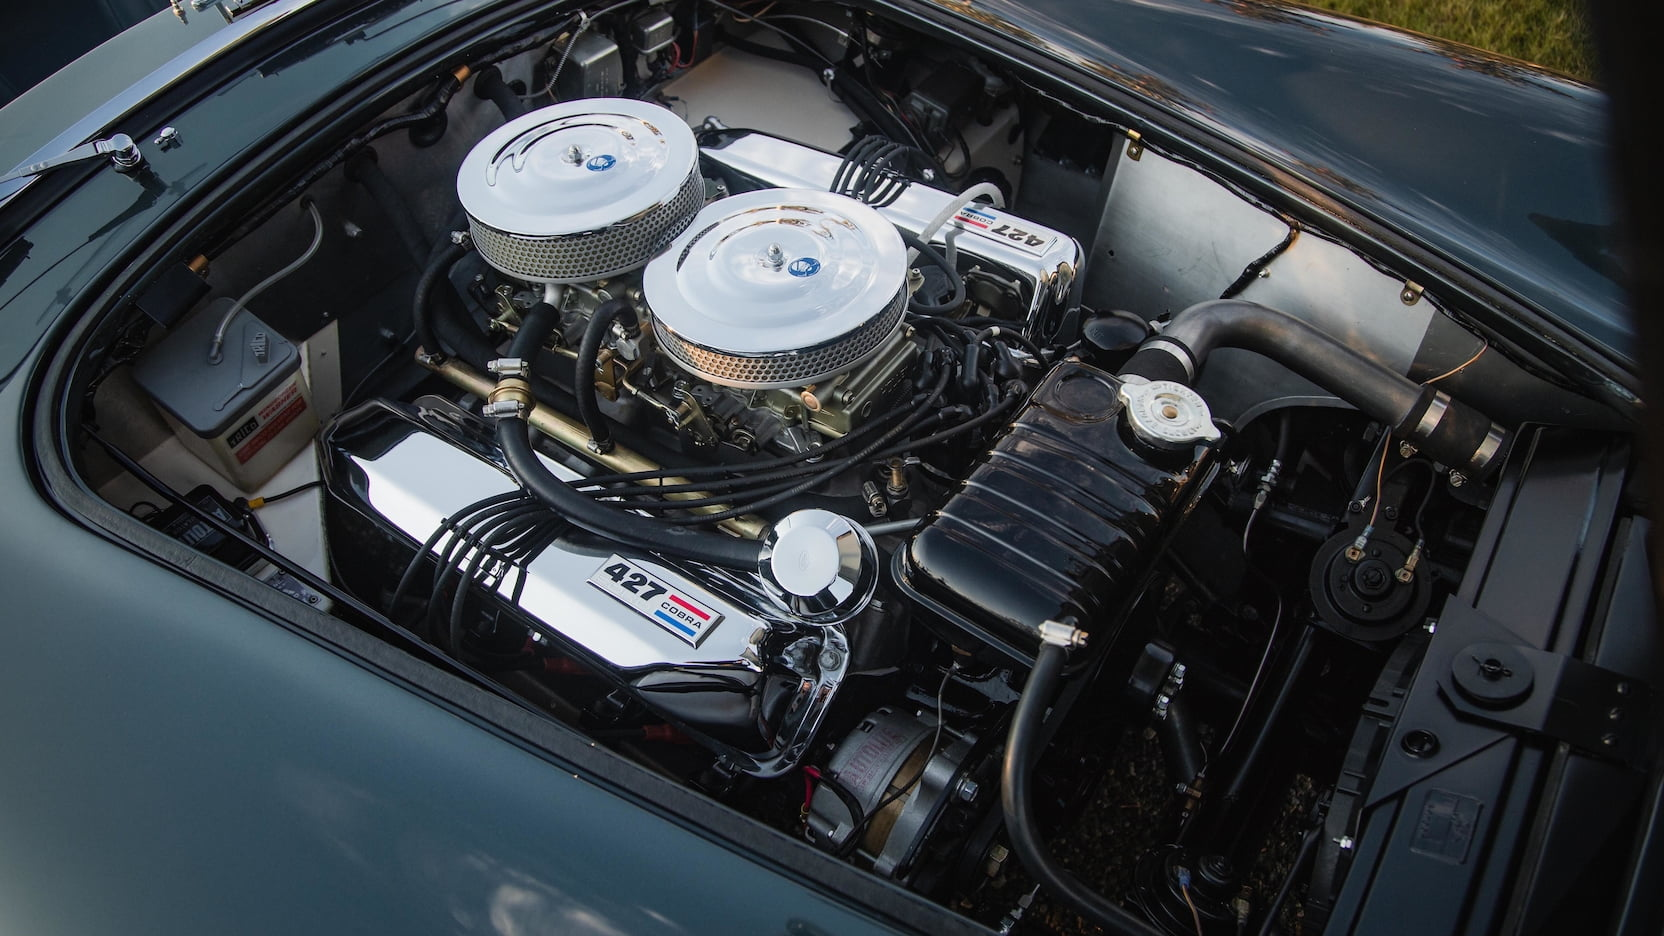 Shelby 427 Cobra Roadster engine